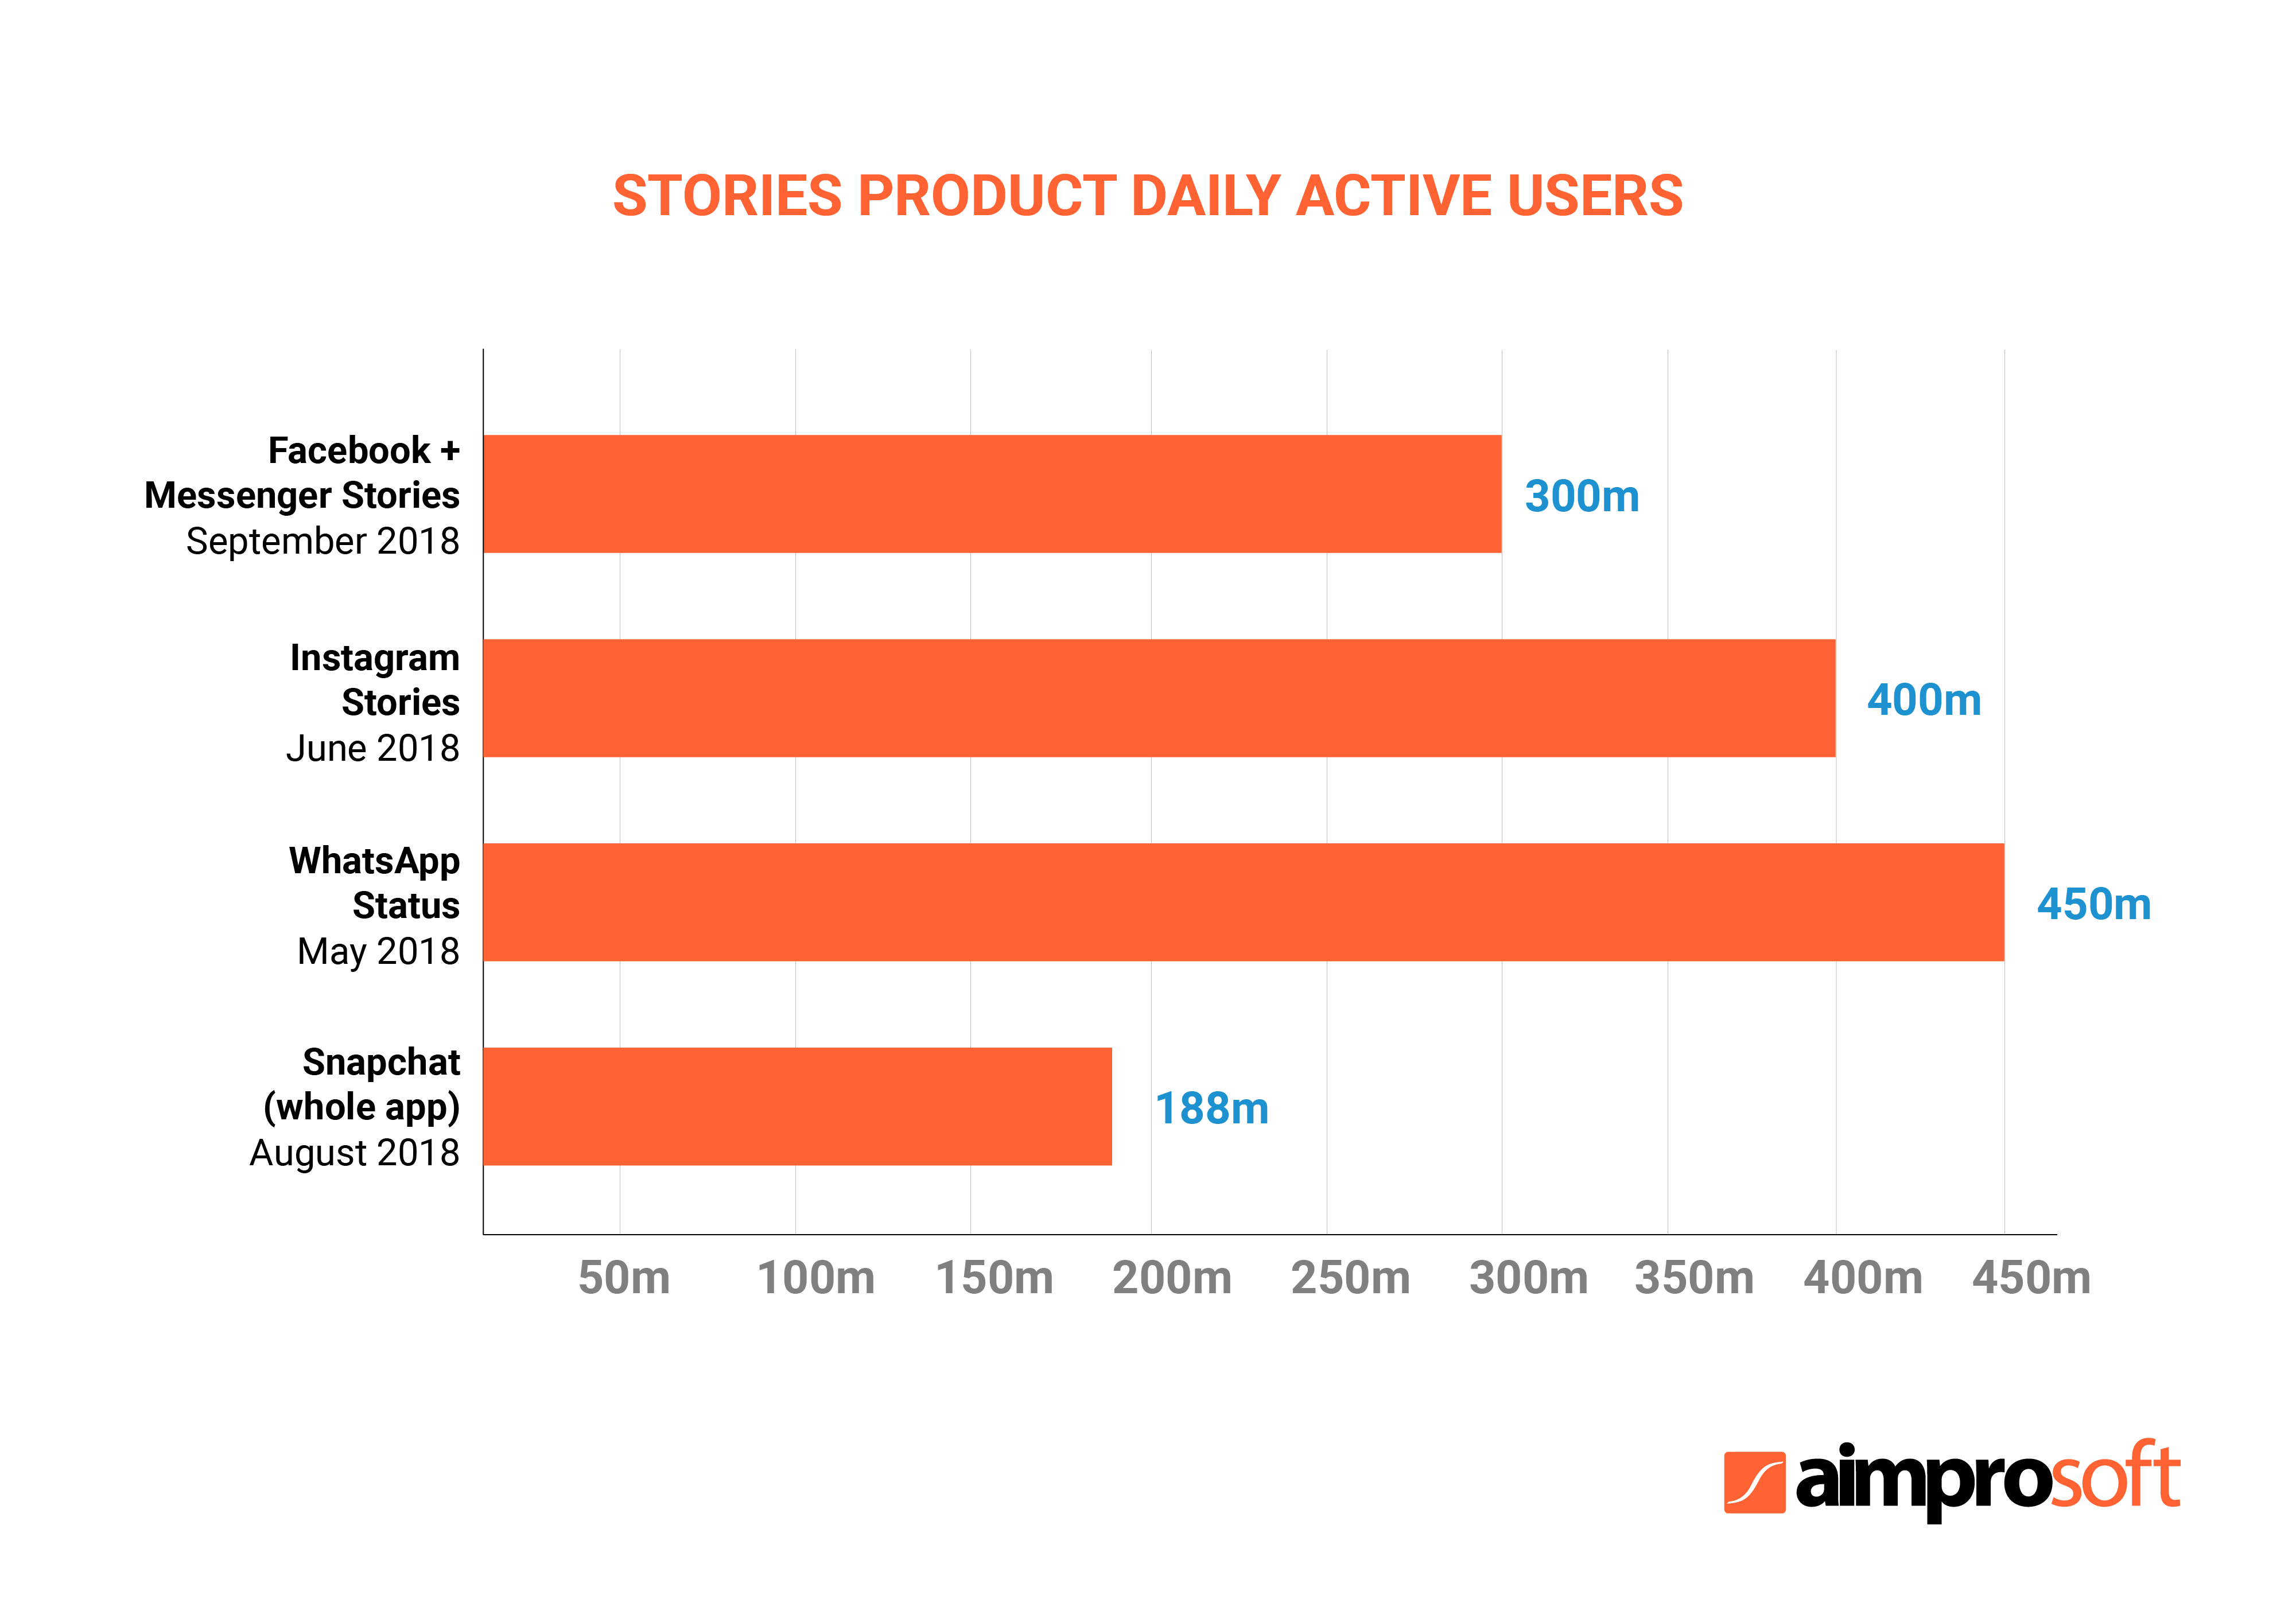 The scope of stories product daily active users